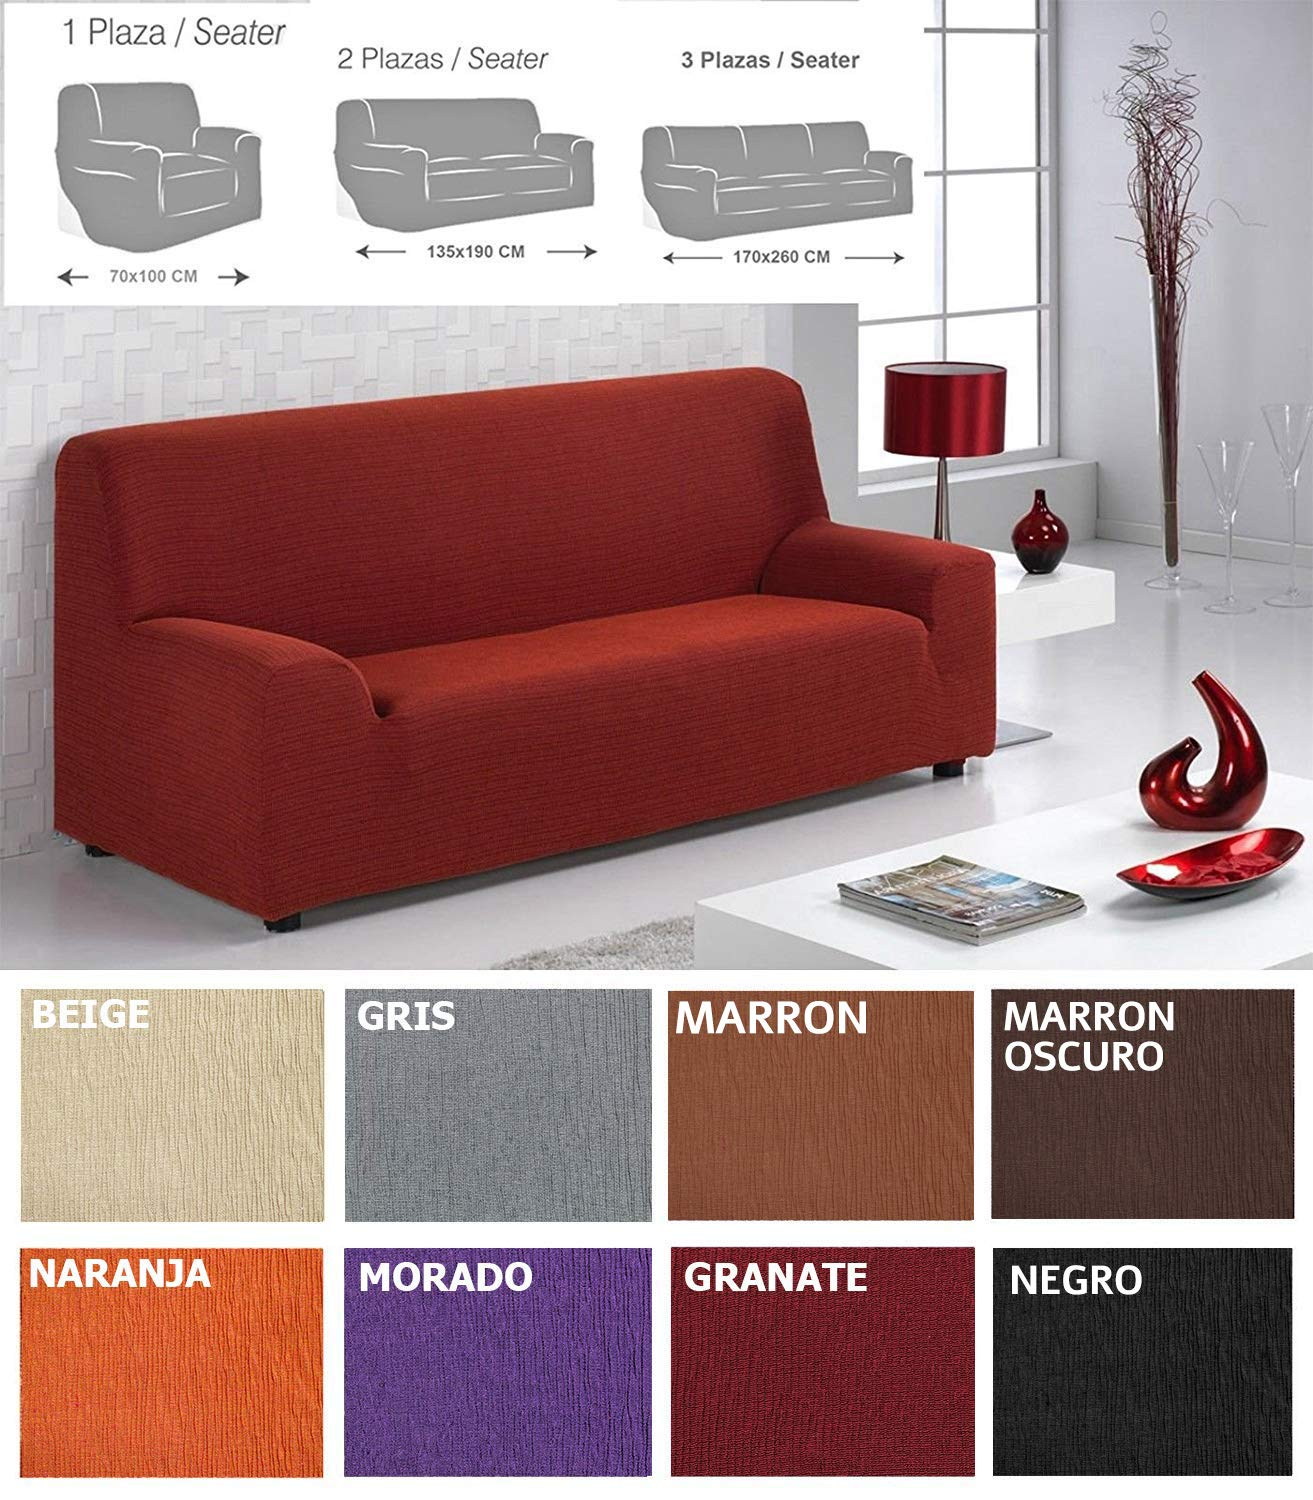 MercuryTextil Fundas de Sofas elasticas y adapatable, Funda Sofa 1,2,3 plazas Sofa Clic (Granate, 2PLAZAS 135-190CM)